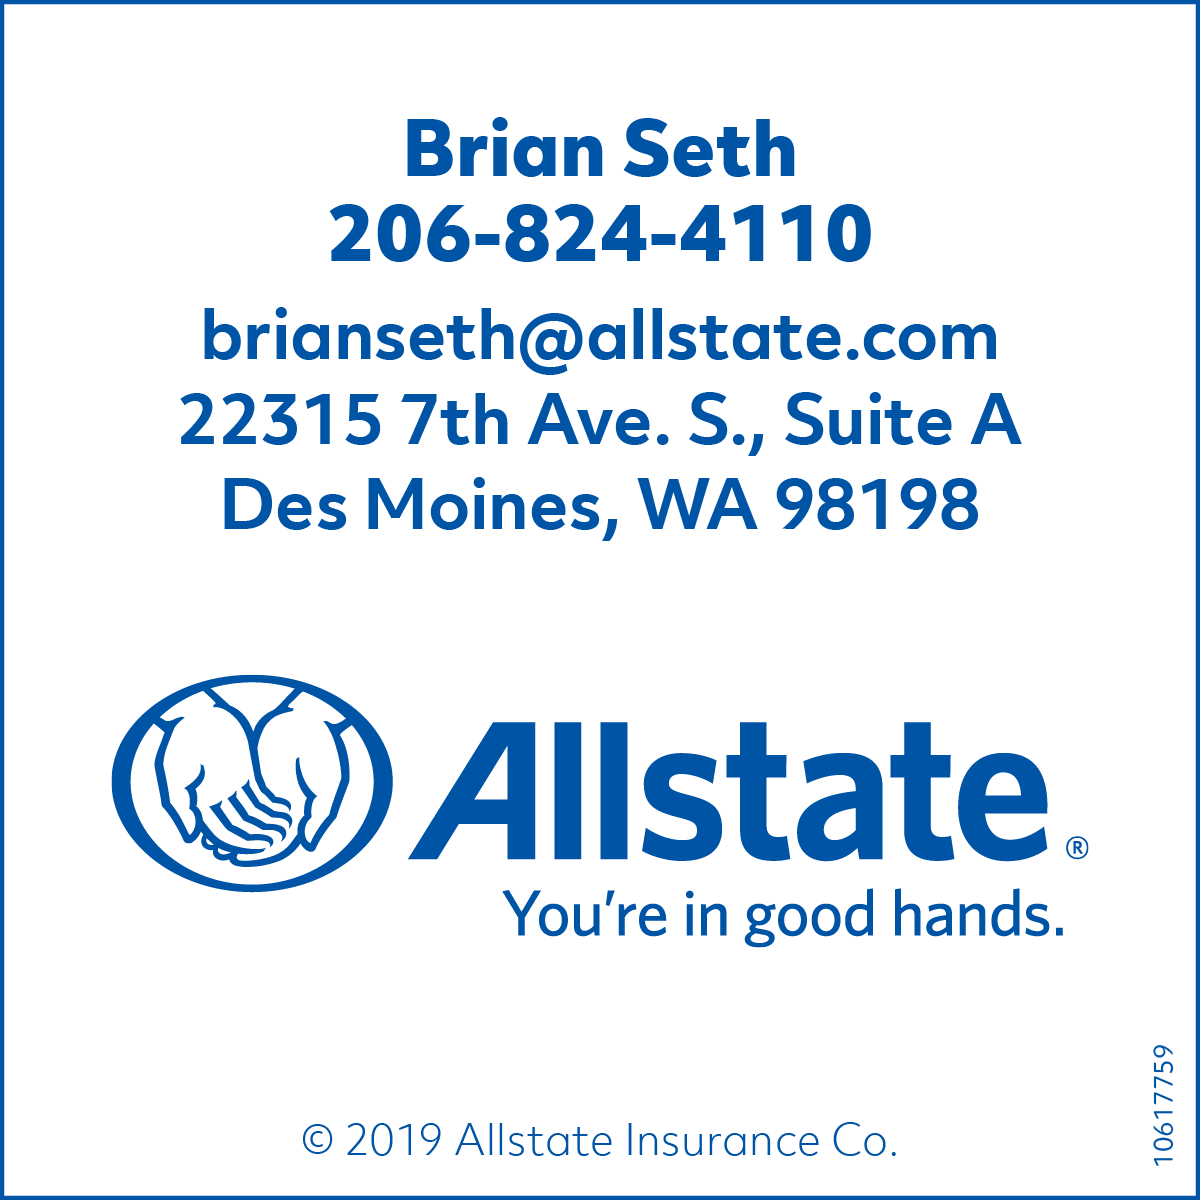 Brian Seth with Allstate